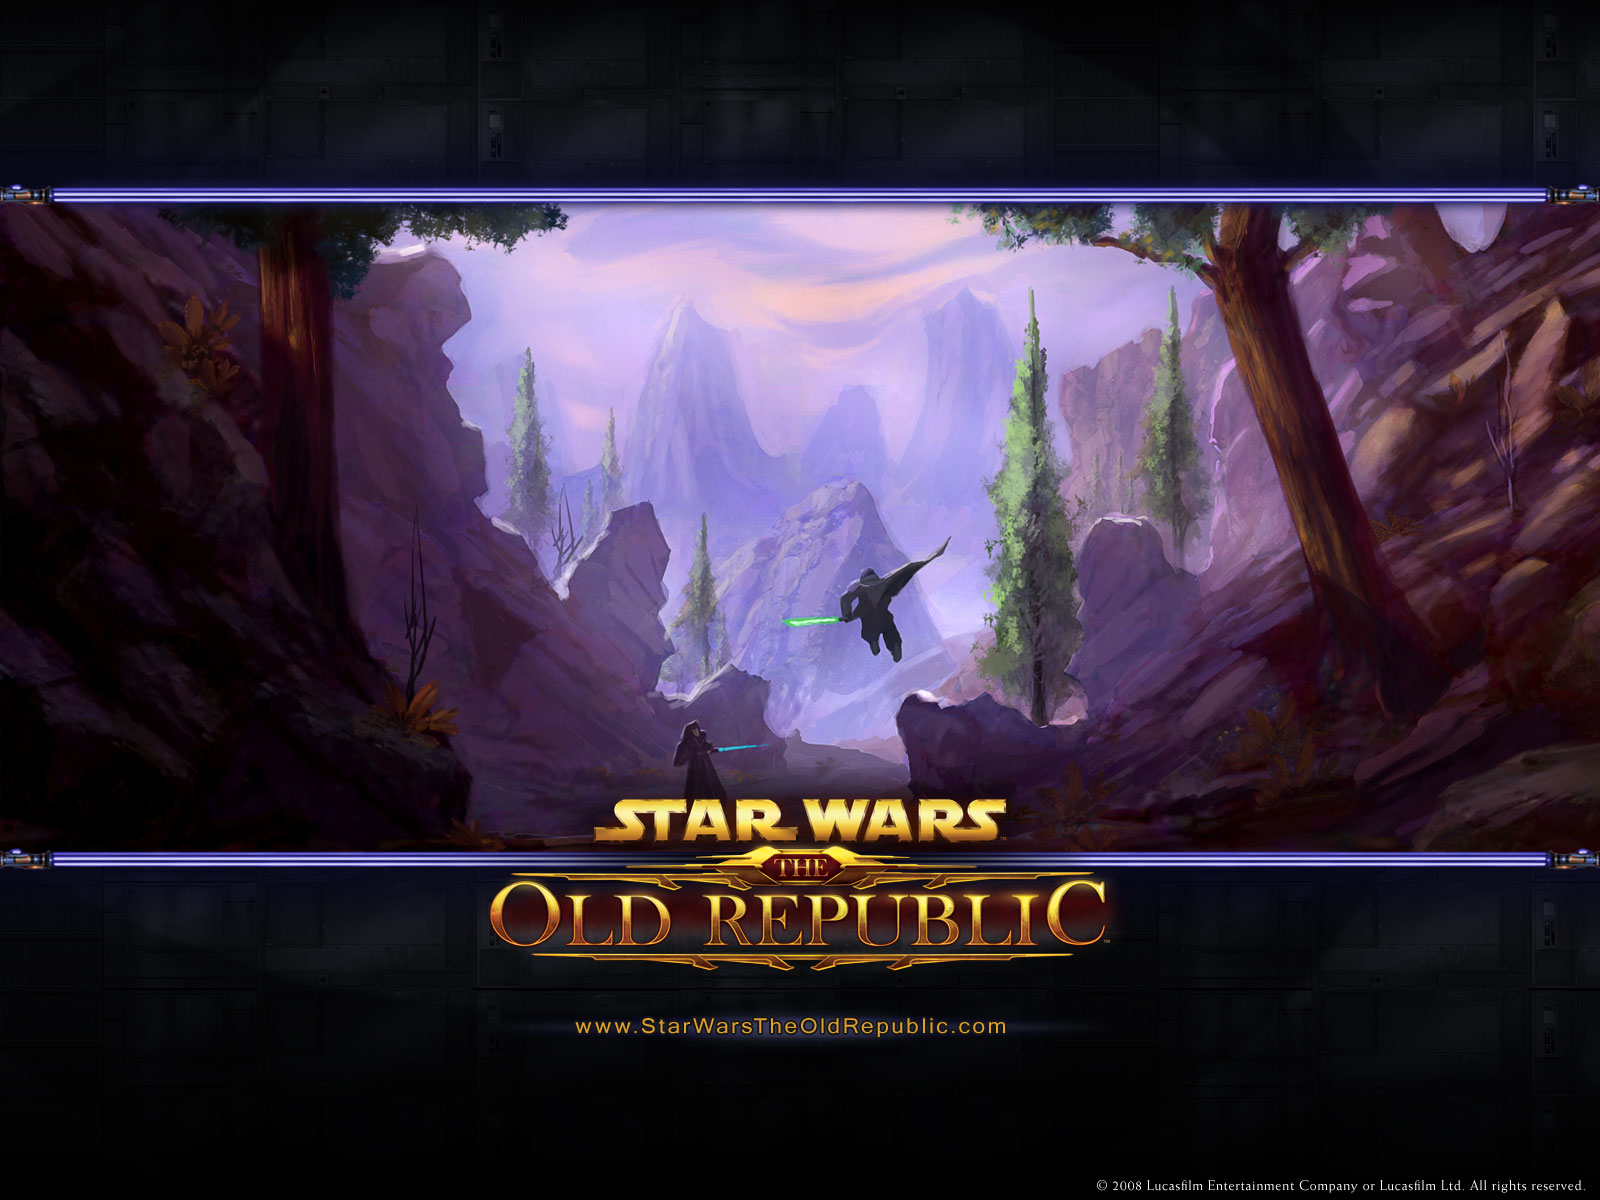 http://4.bp.blogspot.com/-240B0TG5DCs/TkyIlJR6c5I/AAAAAAAAAKo/aZ5Ue4OUdbk/s1600/Star+Wars+The+Old+Republic+Wallpaper+%2528www.gameswallpapersatoz.blogspot.com%25291.jpg